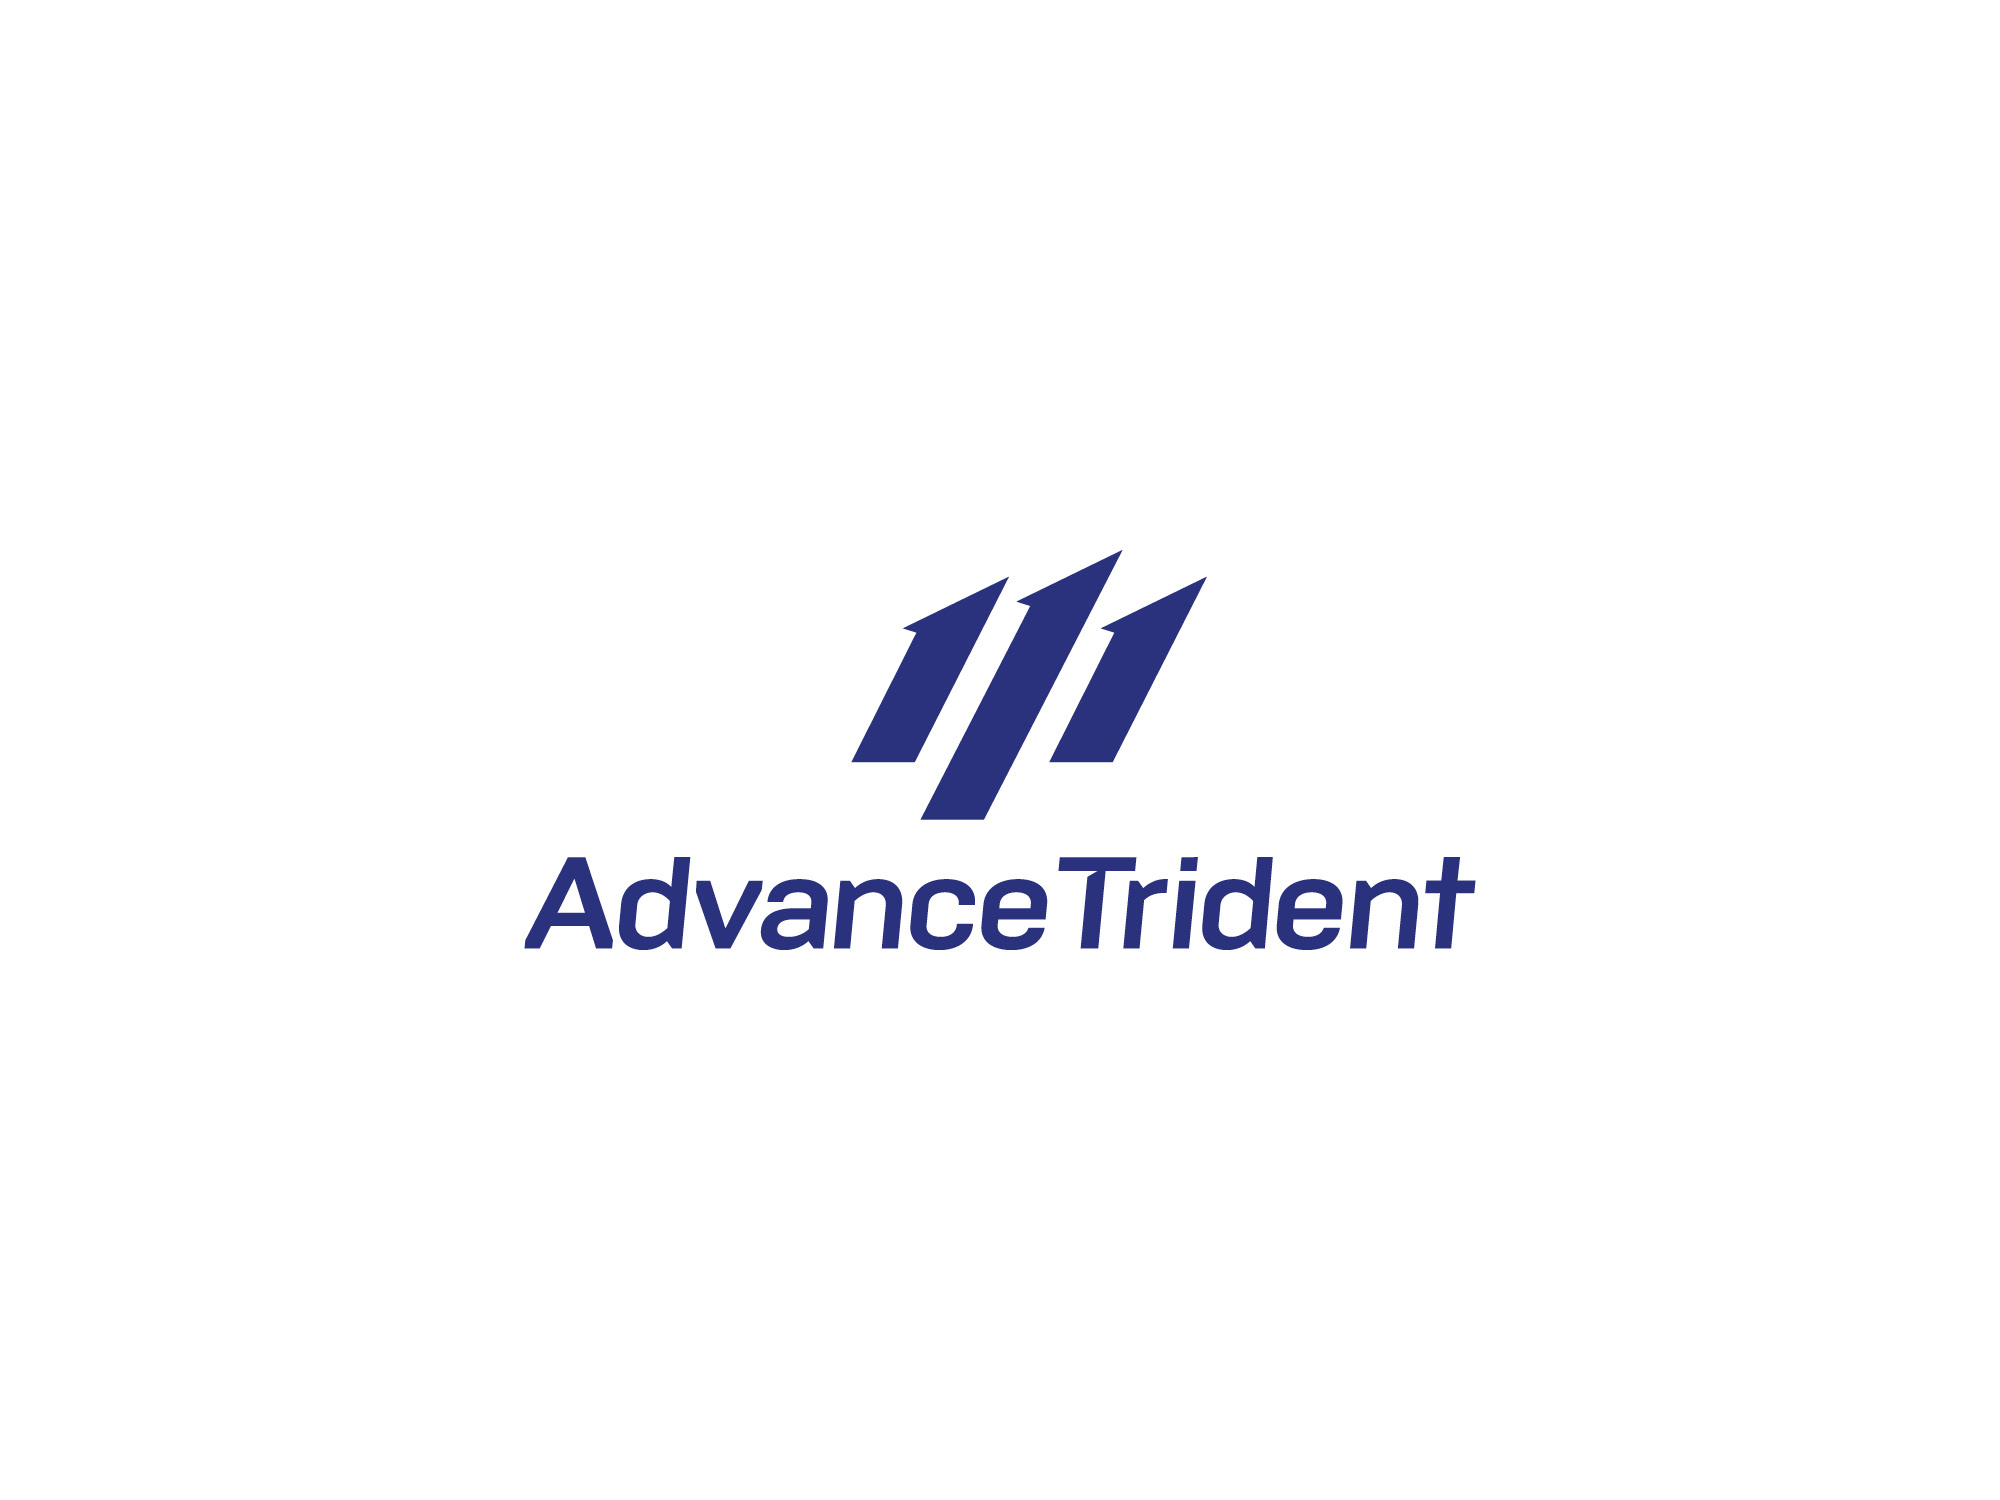 onfire design advance trident branding logo design 1